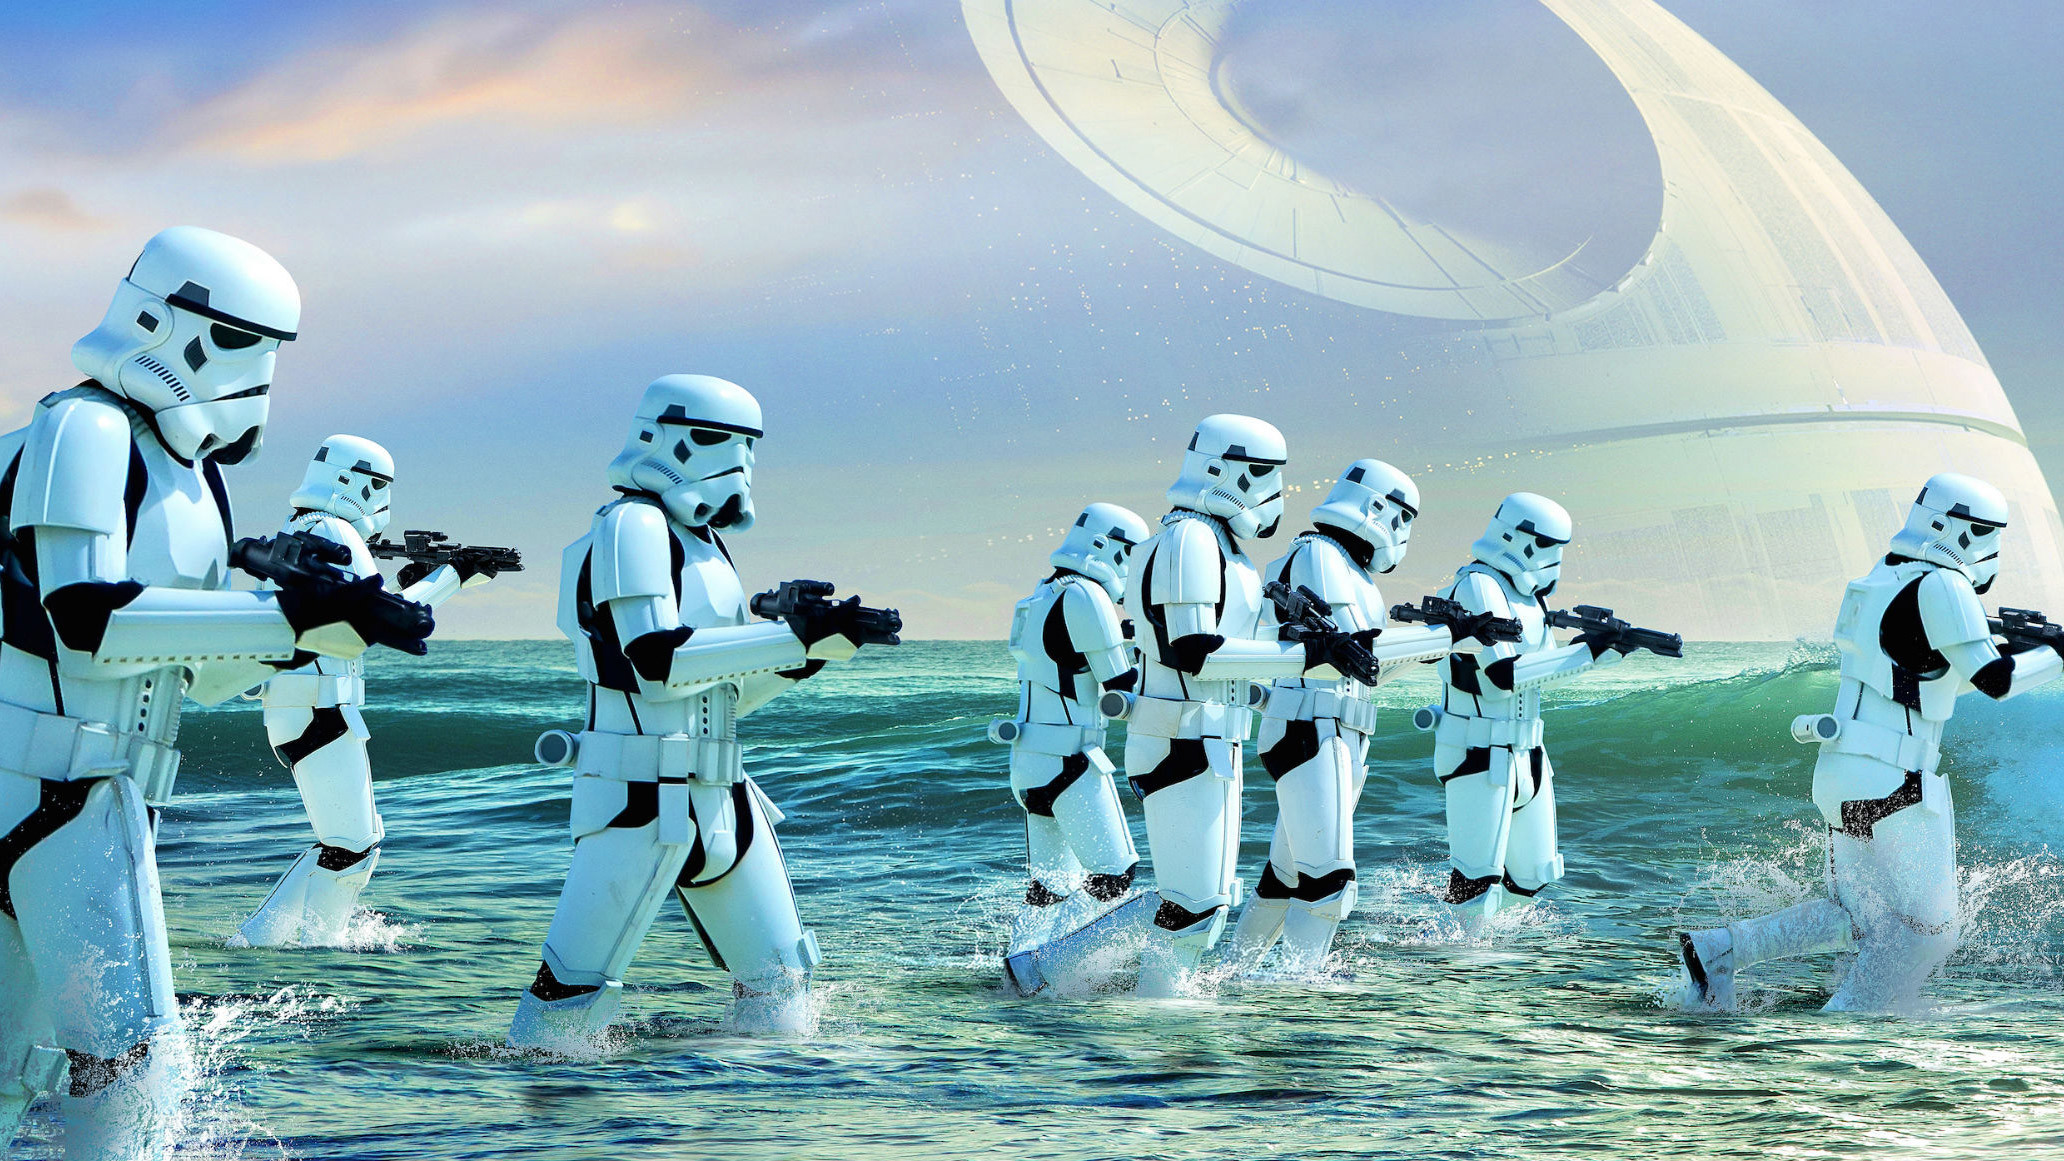 Res: 2064x1161, Stormtrooper Rogue One A Star Wars